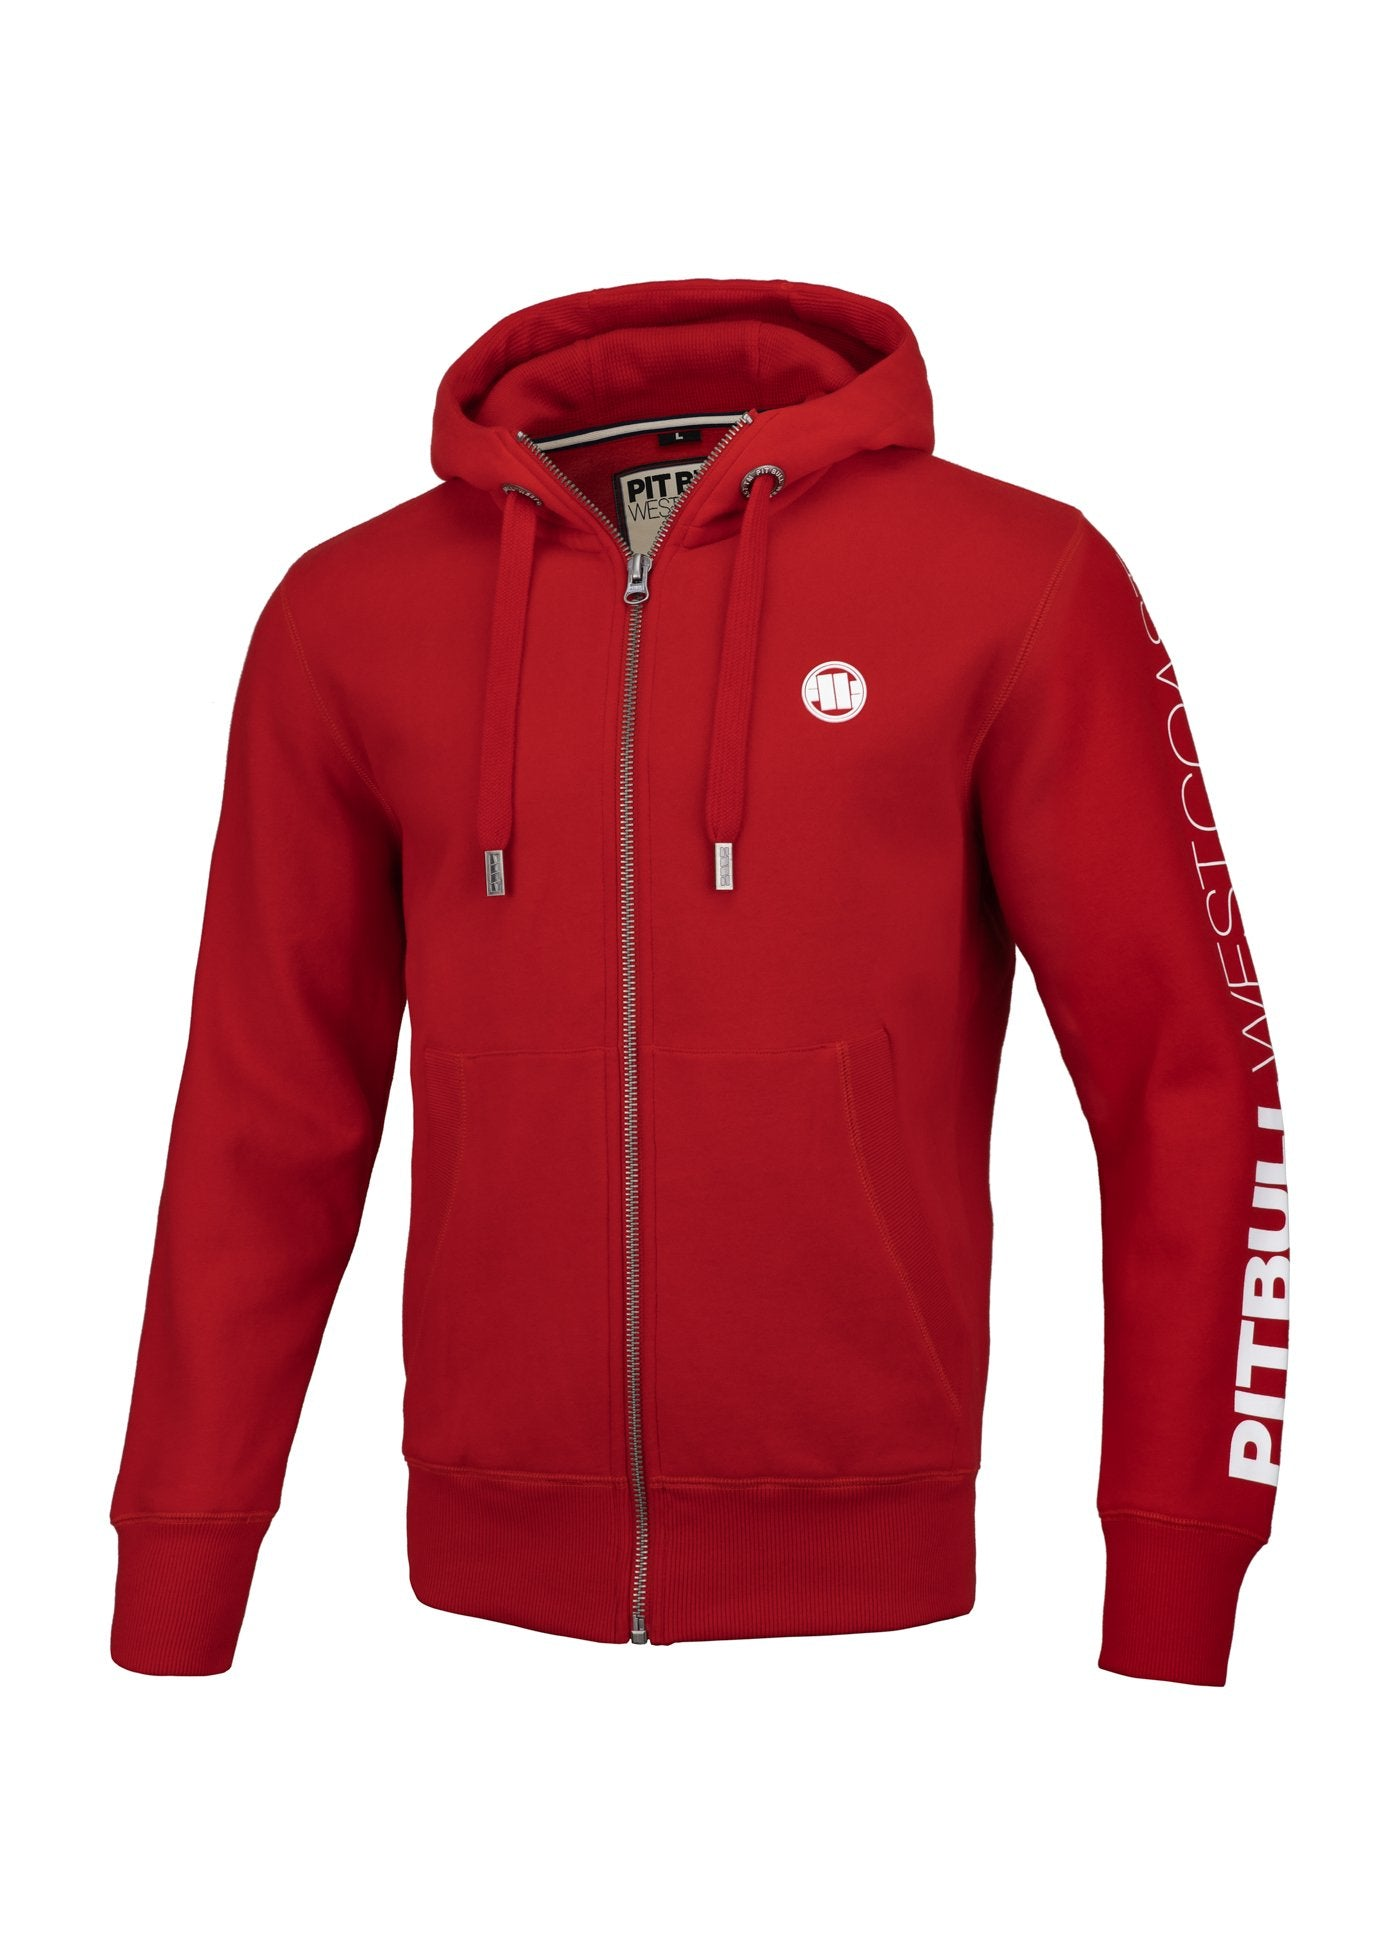 HOODED ZIP SLEEVE TNT RED - pitbullwestcoast